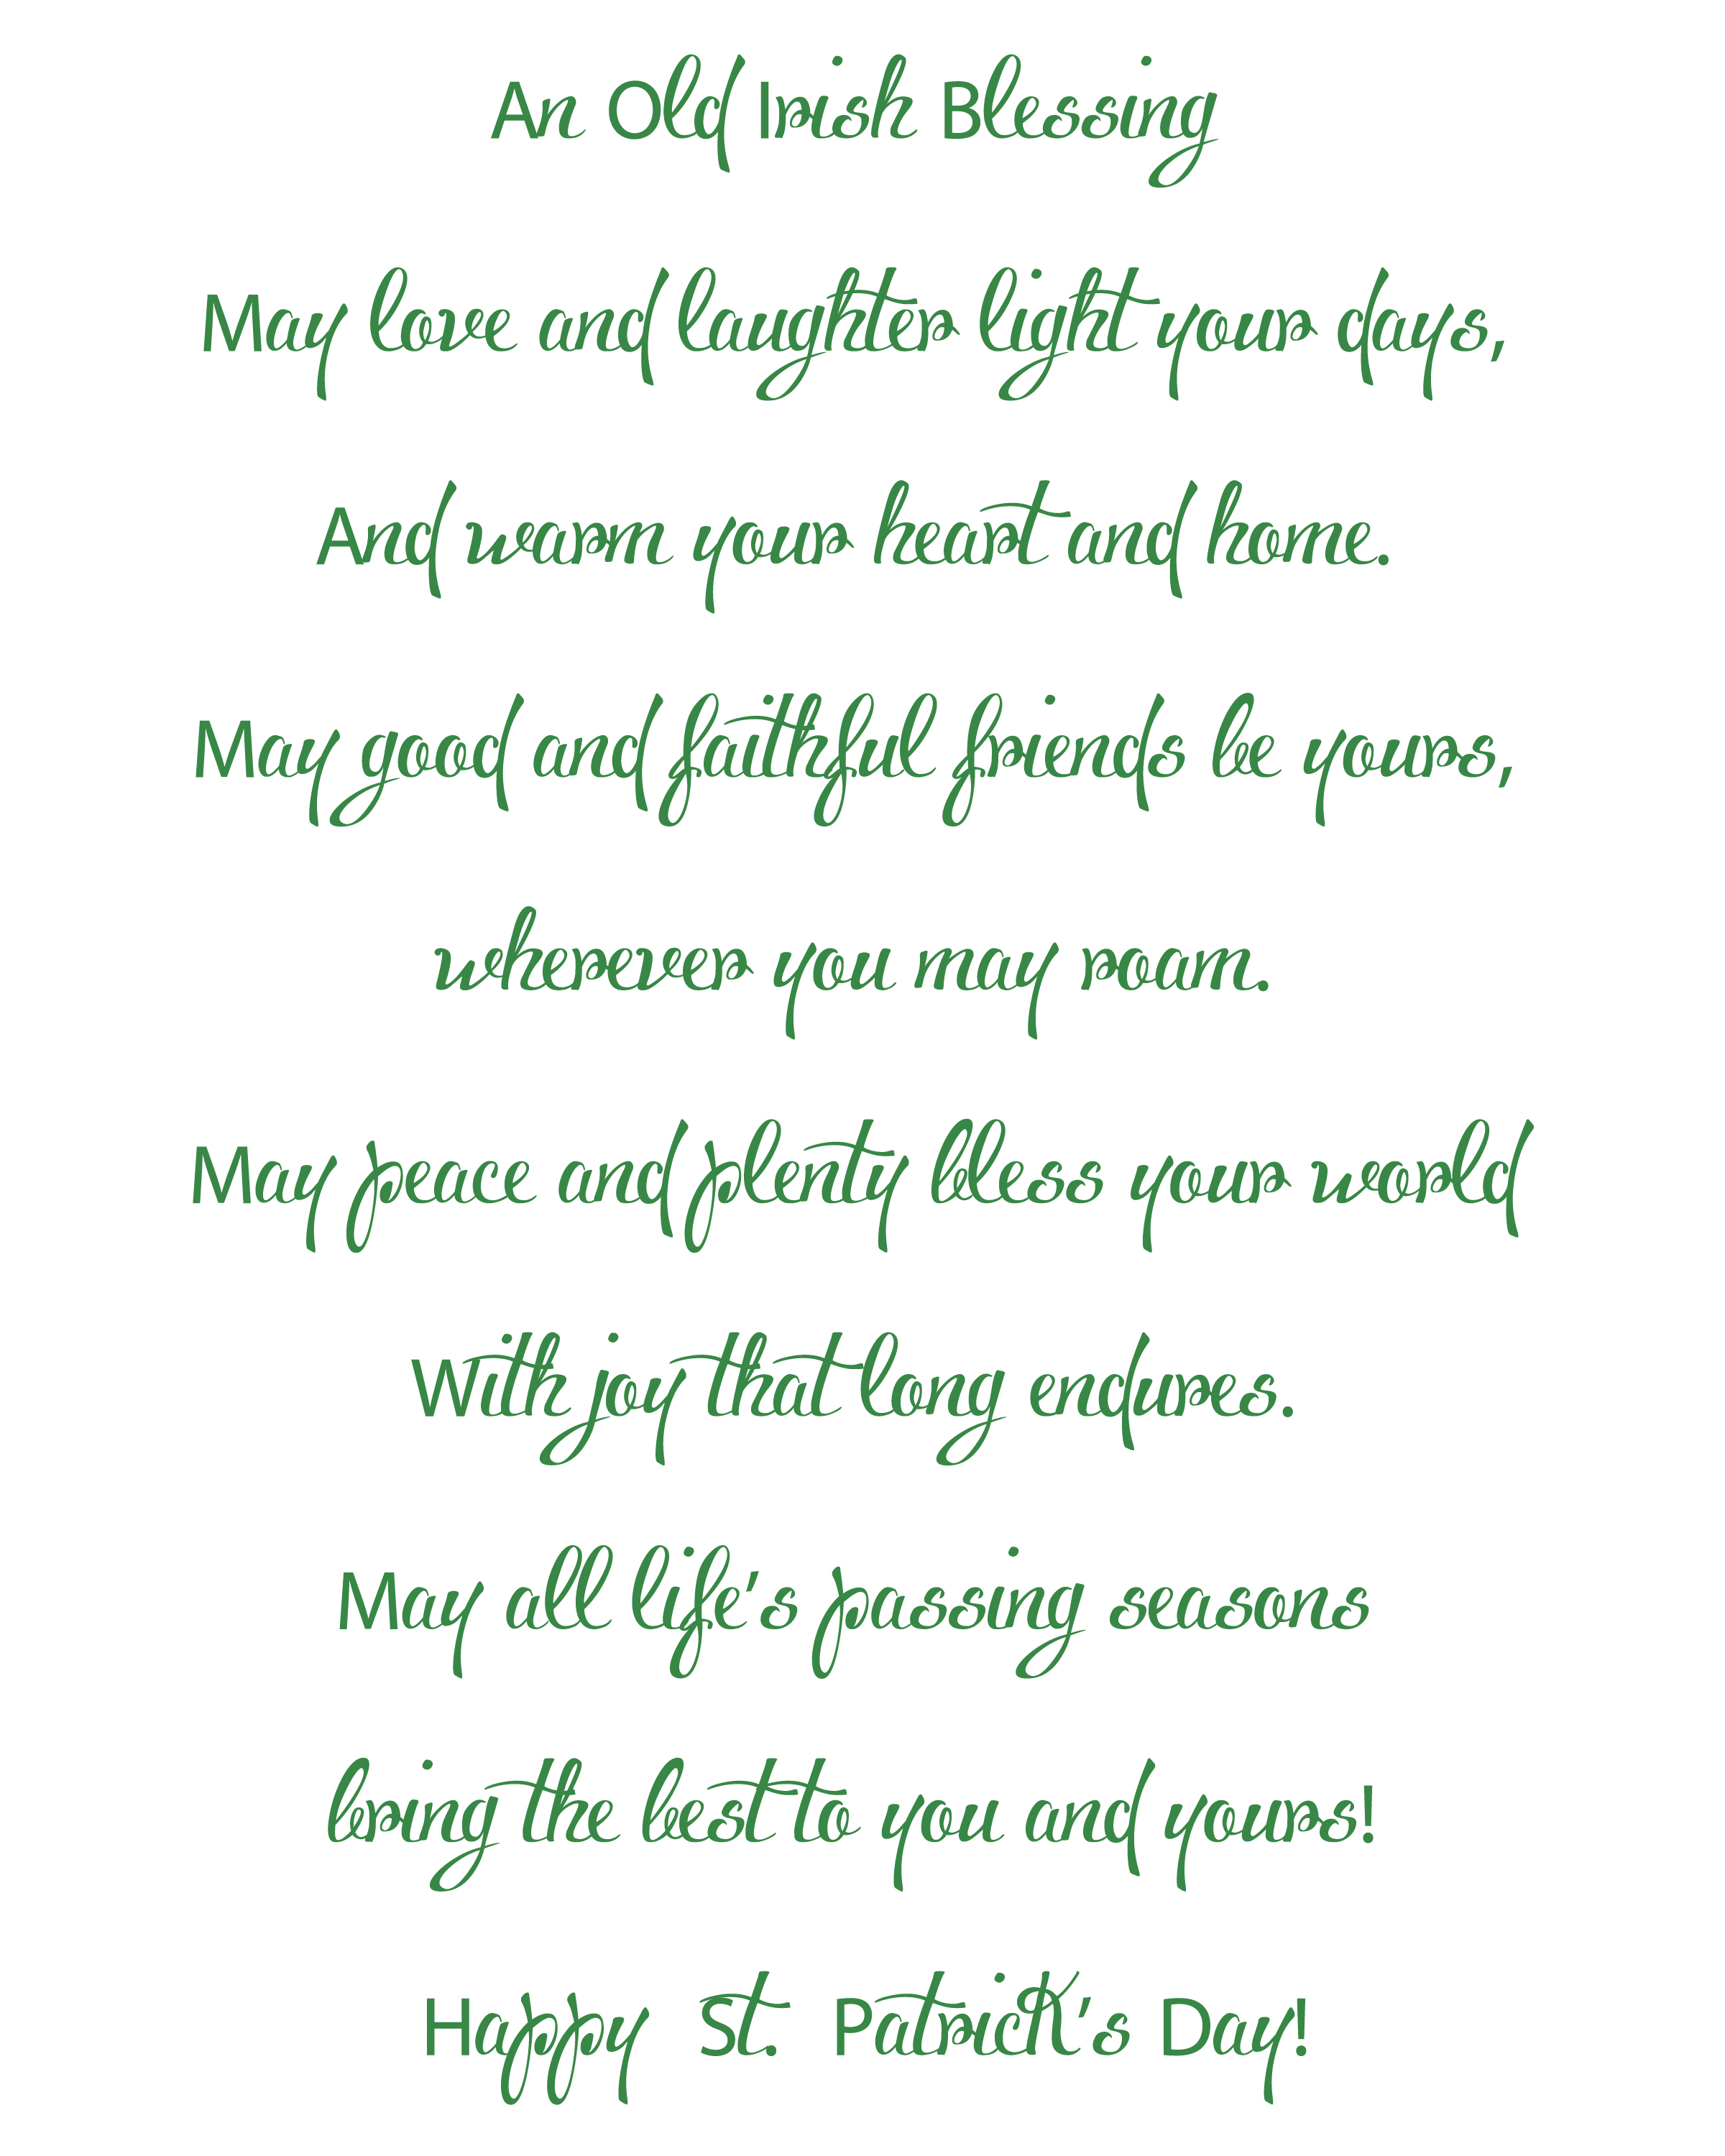 happy st patricks day from kathryn greeley interior designer and author of the collected tabletop